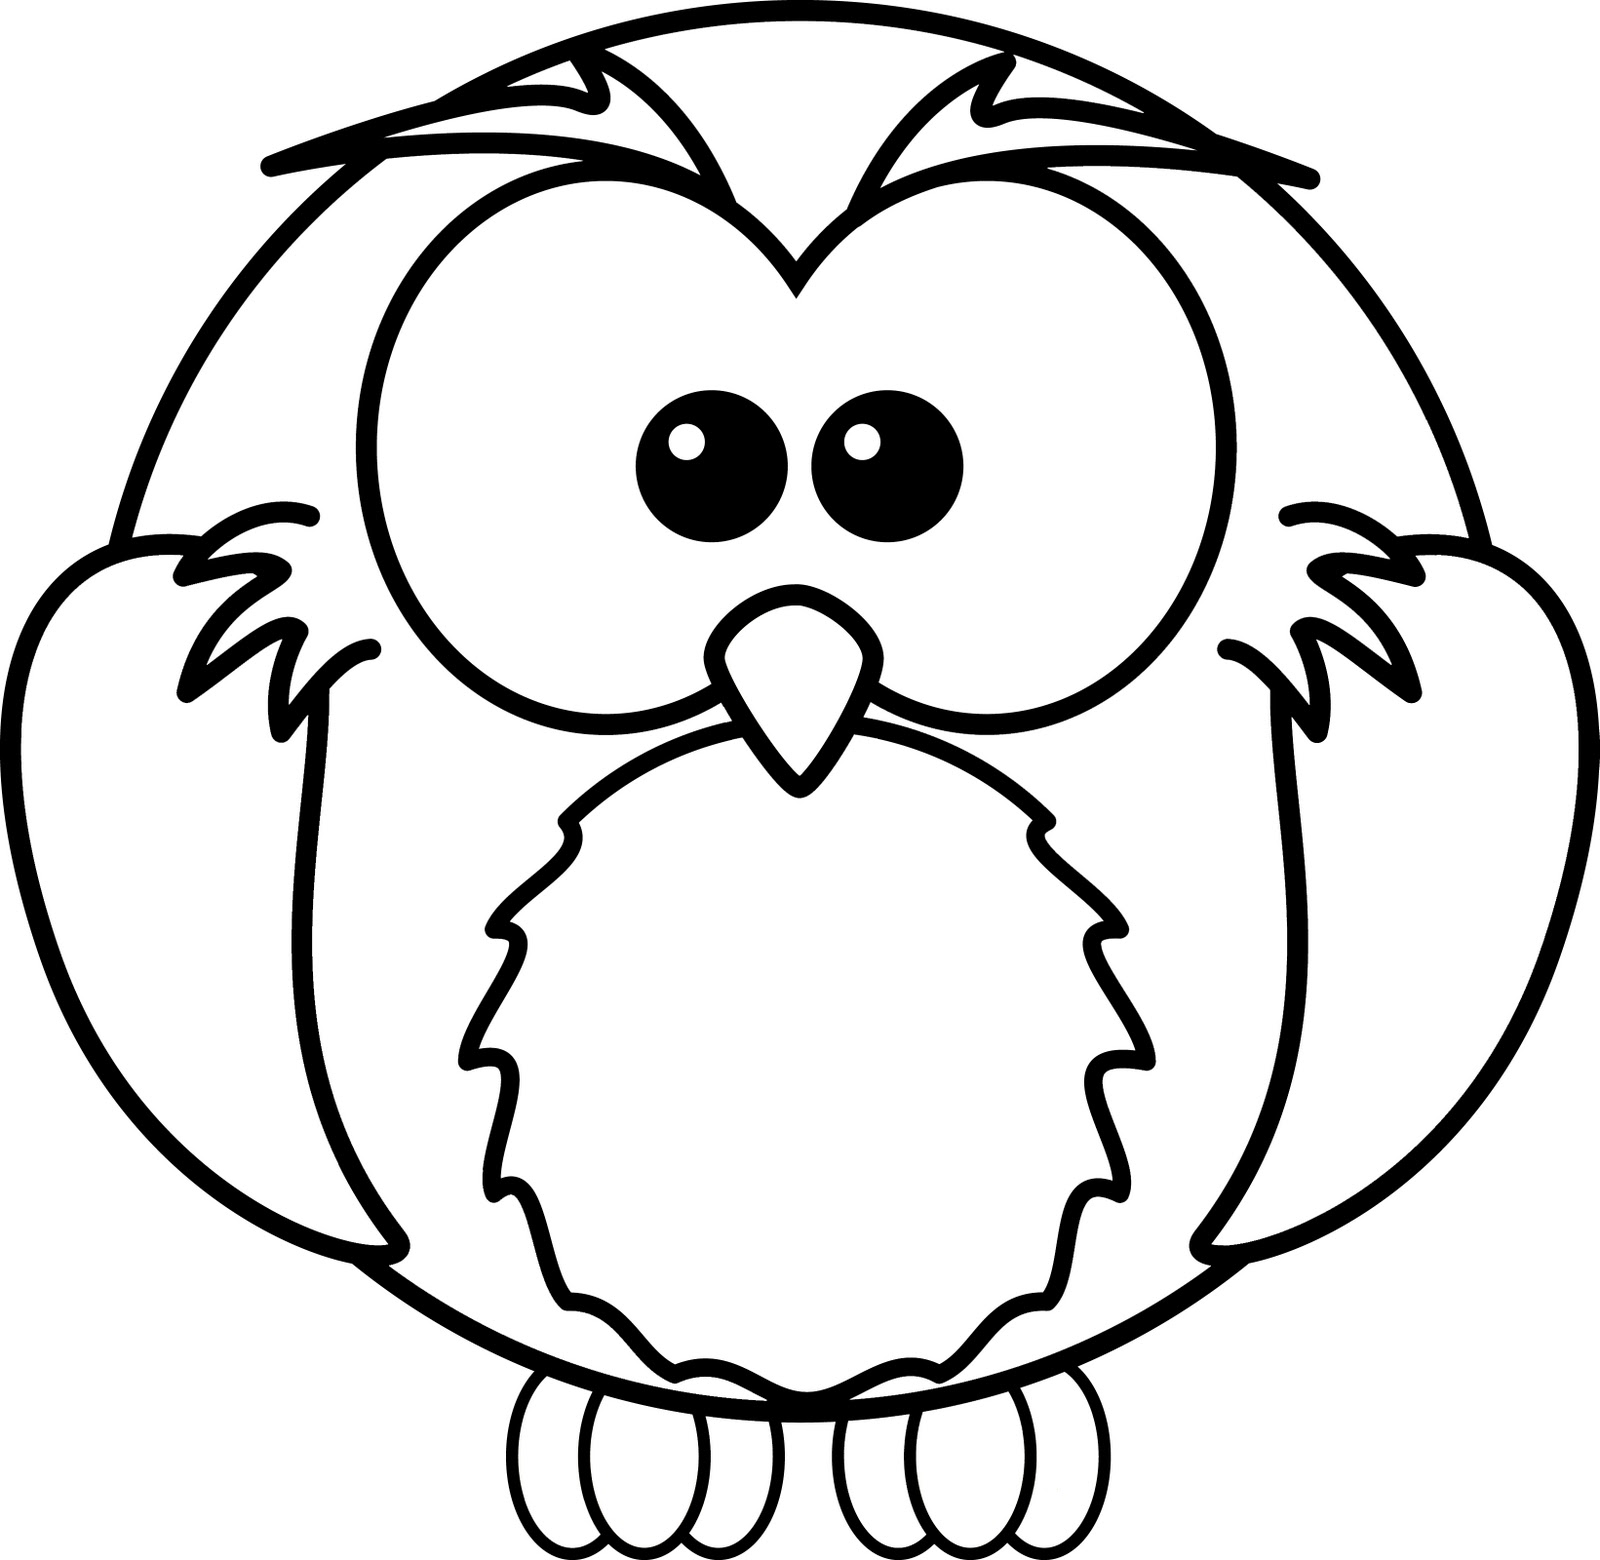 images of owls to color owl coloring pages to print only coloring pages color images of owls to